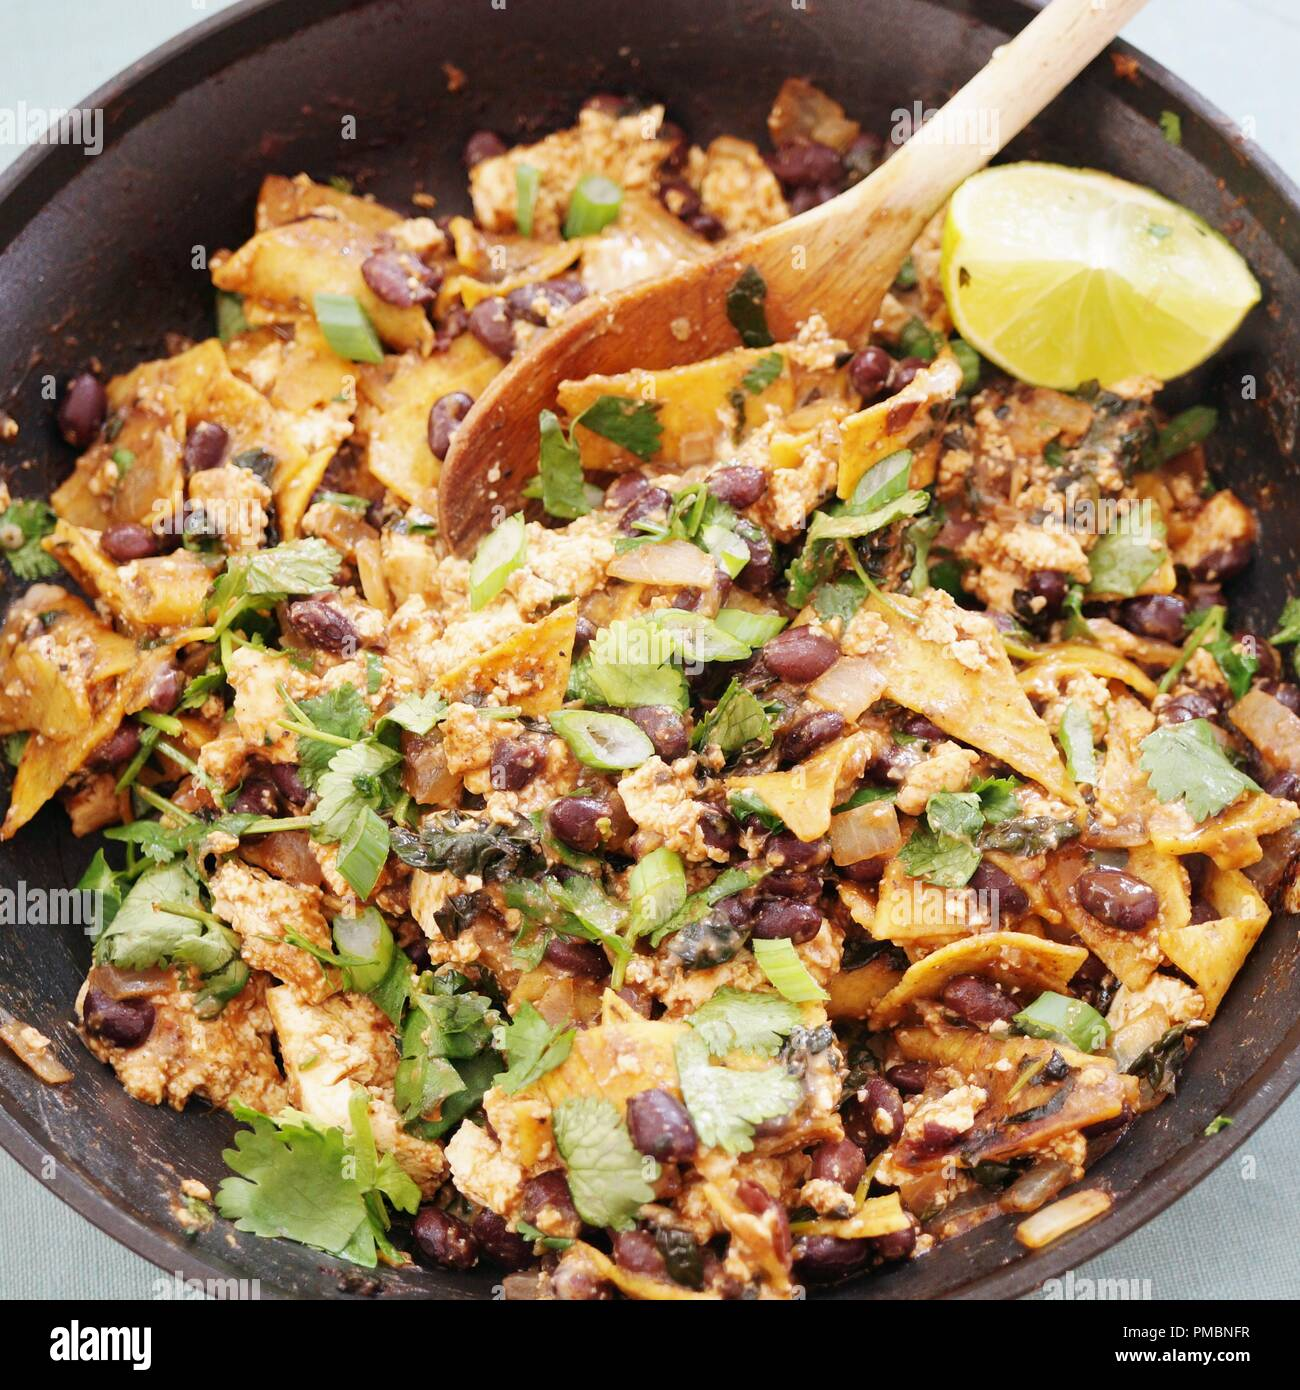 Vegan tofu scramble chilaquiles with beans, scallions and lime - Stock Image